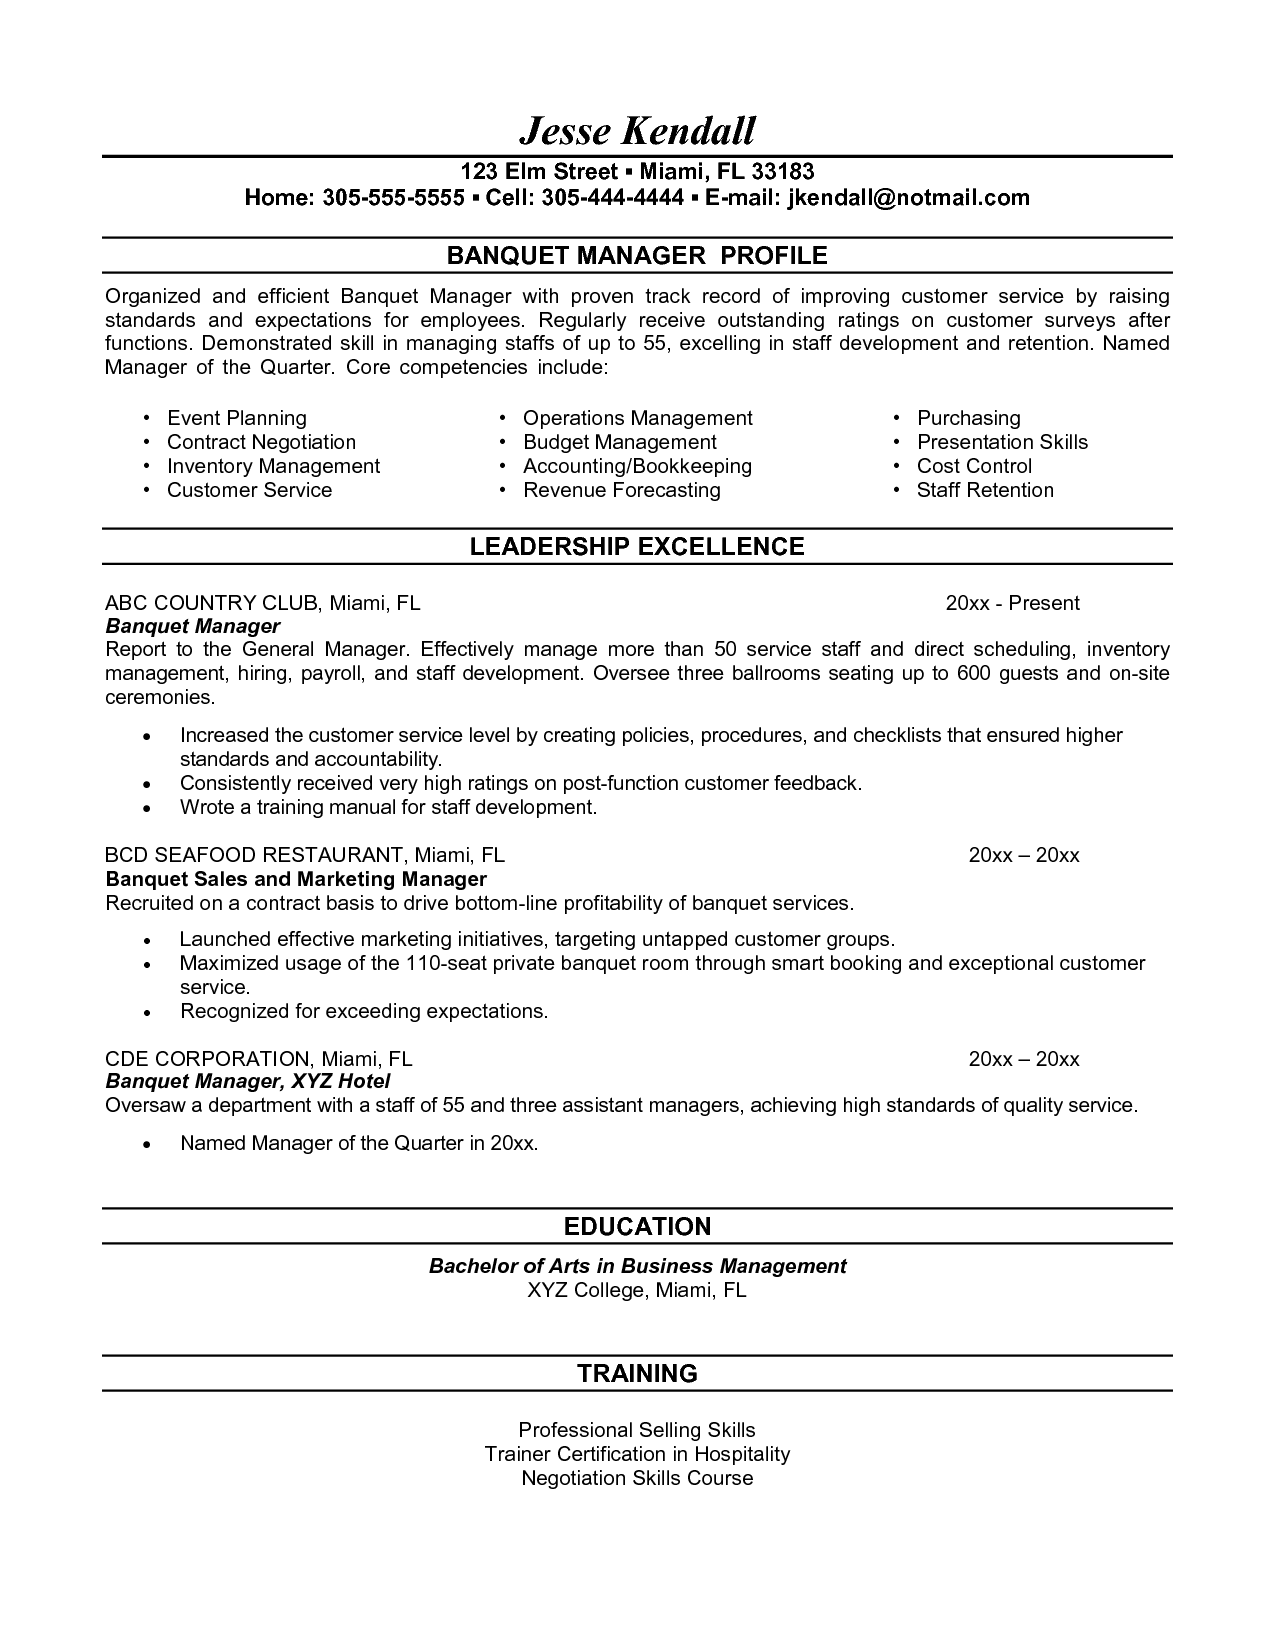 Special Education Teacher Resume Special education law